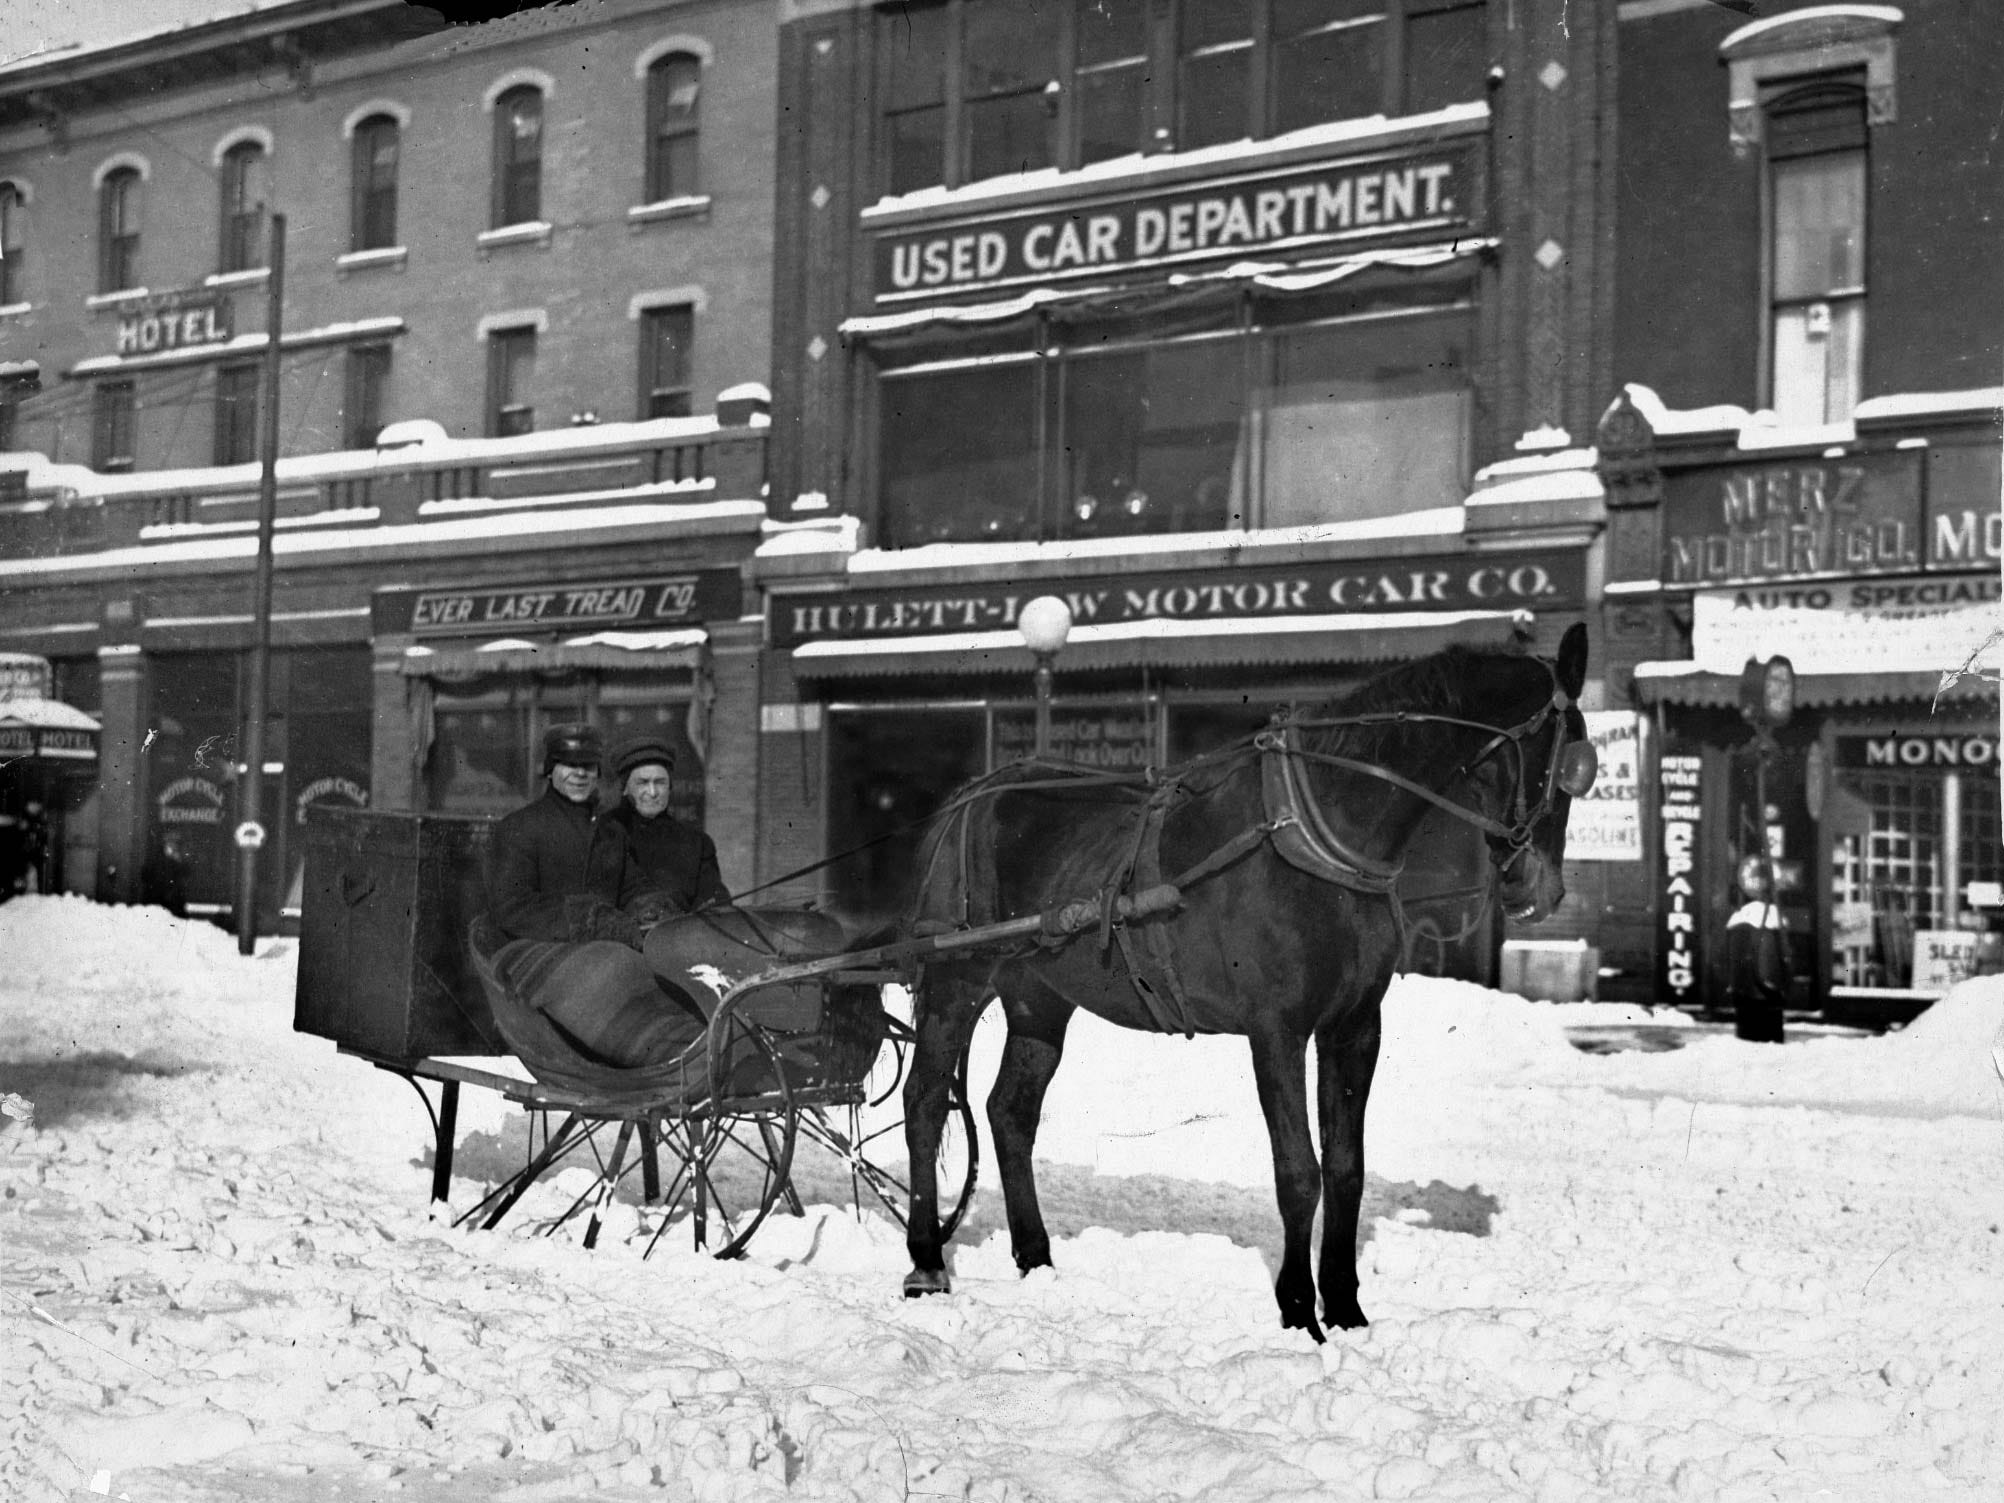 In 1918 this horse drawn sleigh was a necessity for travelers. Today sightseers can ride through the city on horse-drawn carriages.